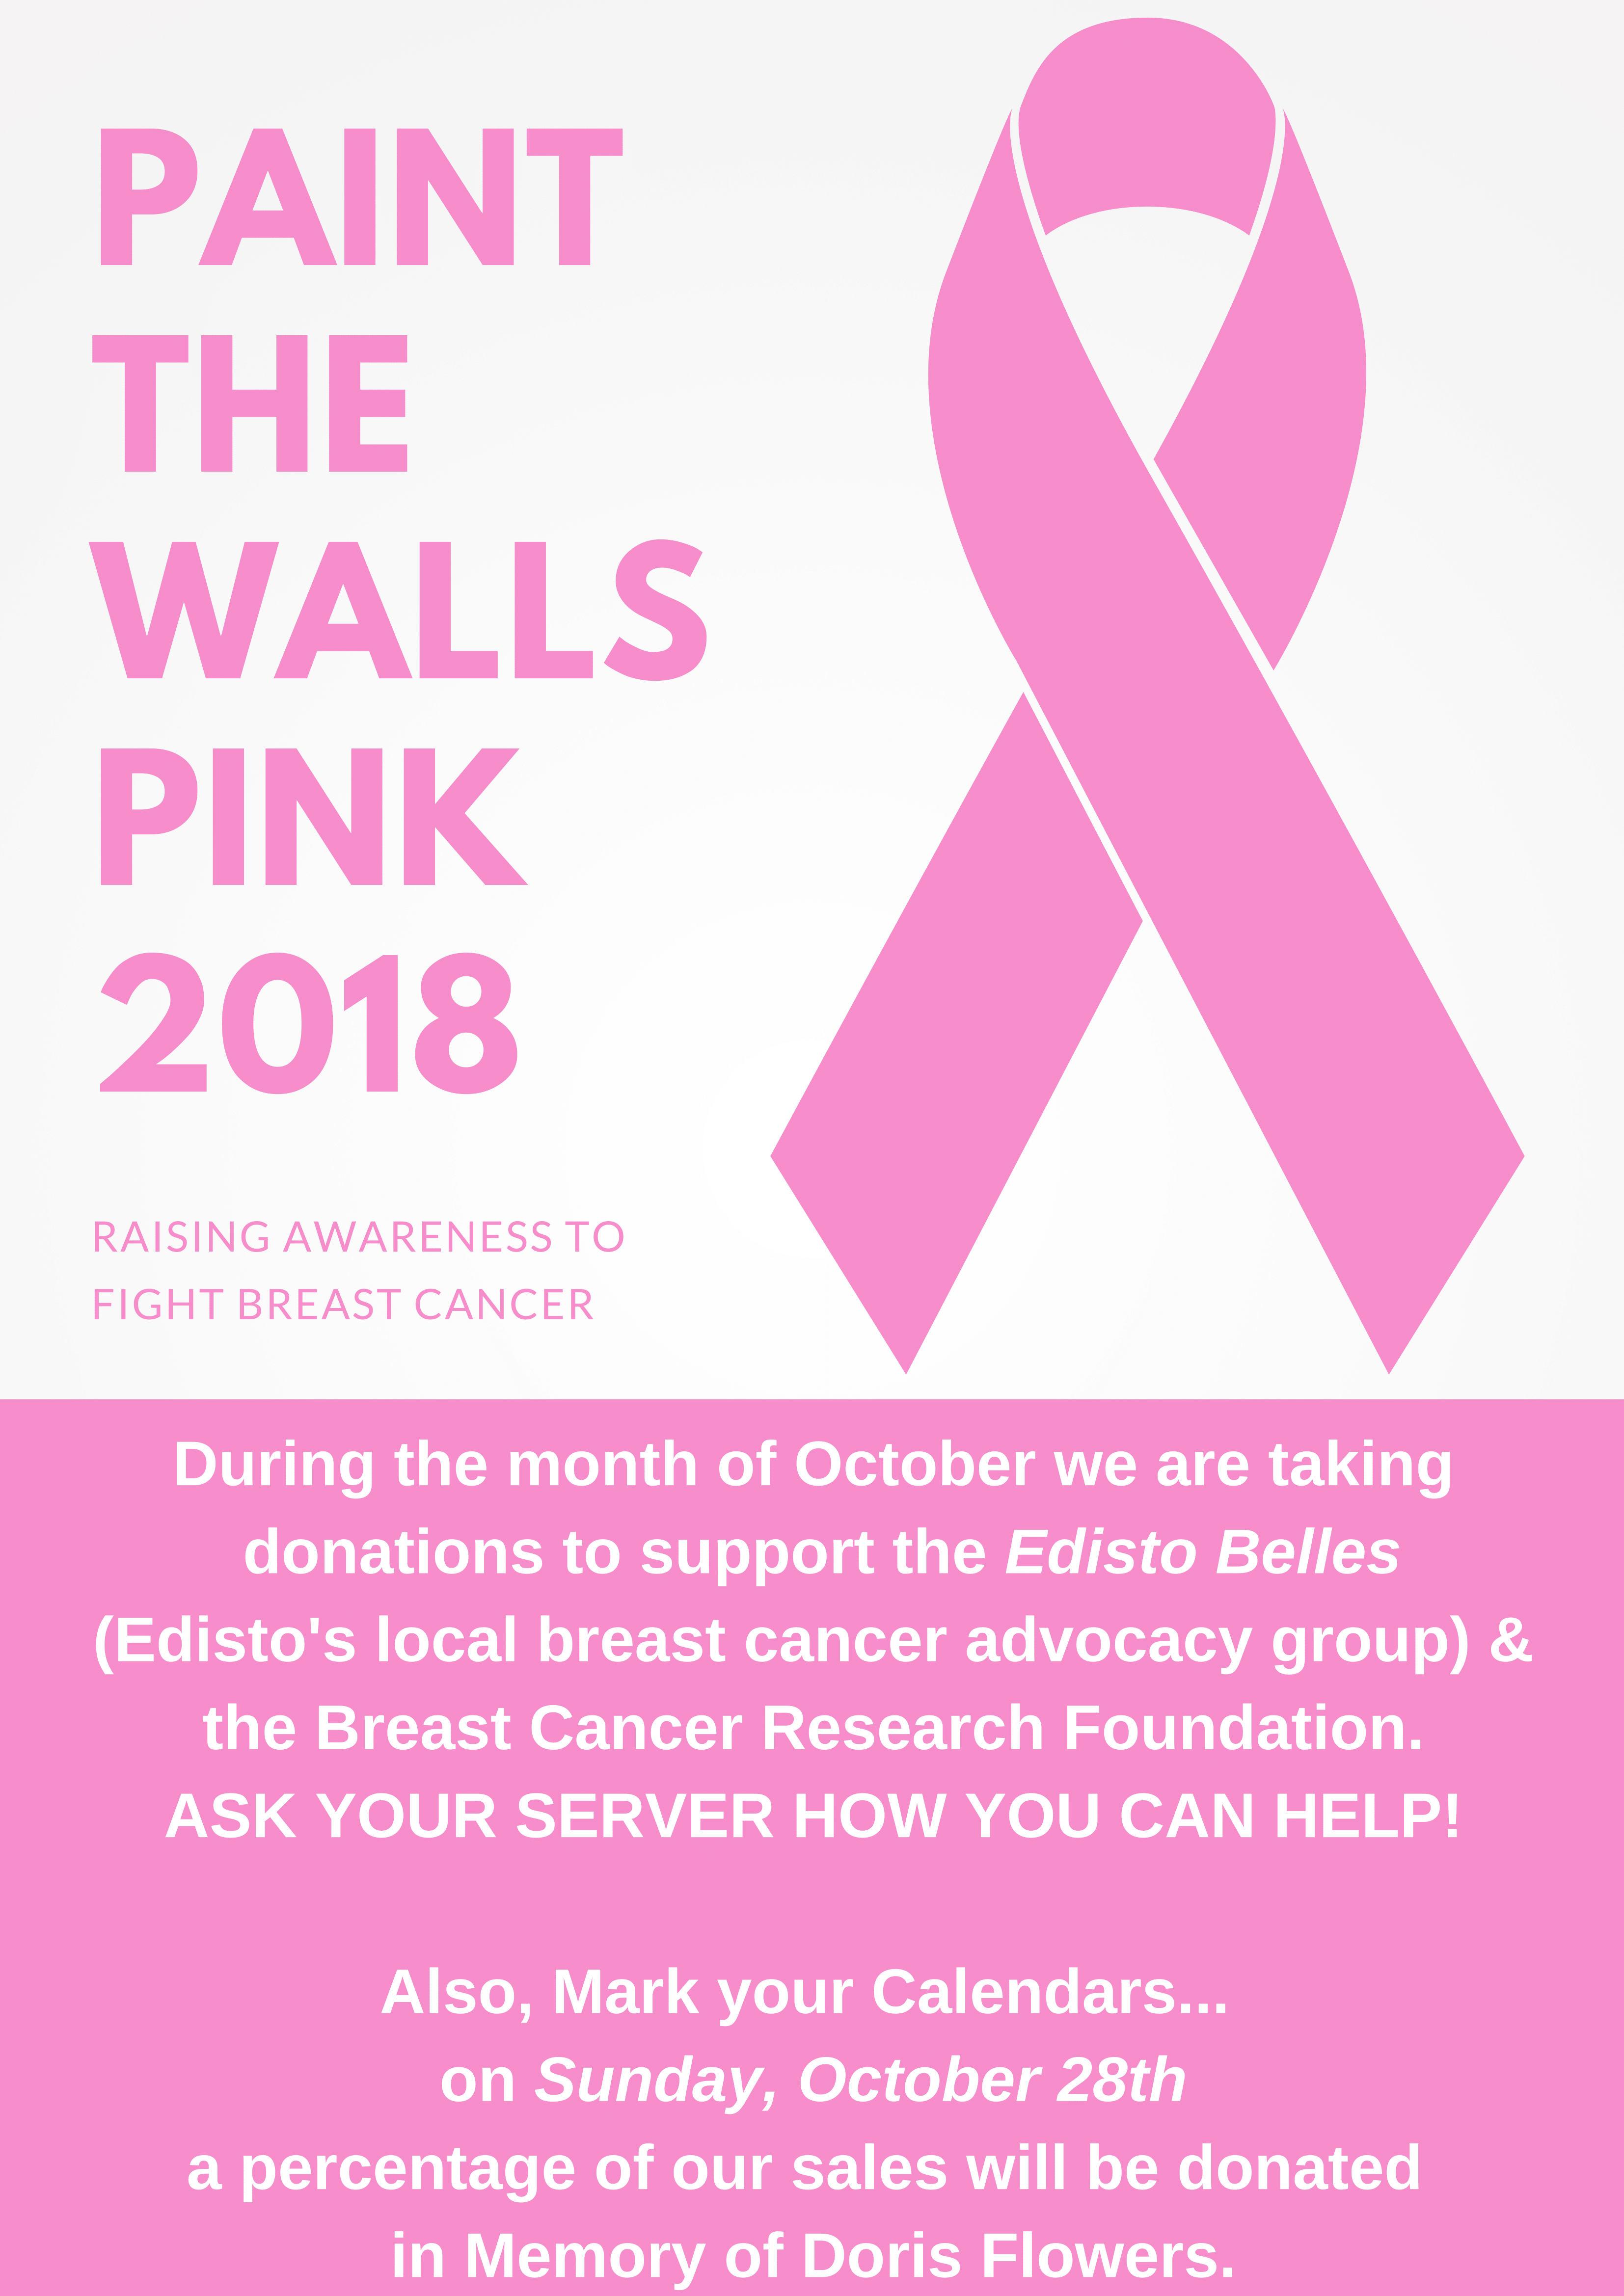 Paint The Walls Pink 2018 Breast Cancer Awareness Poster